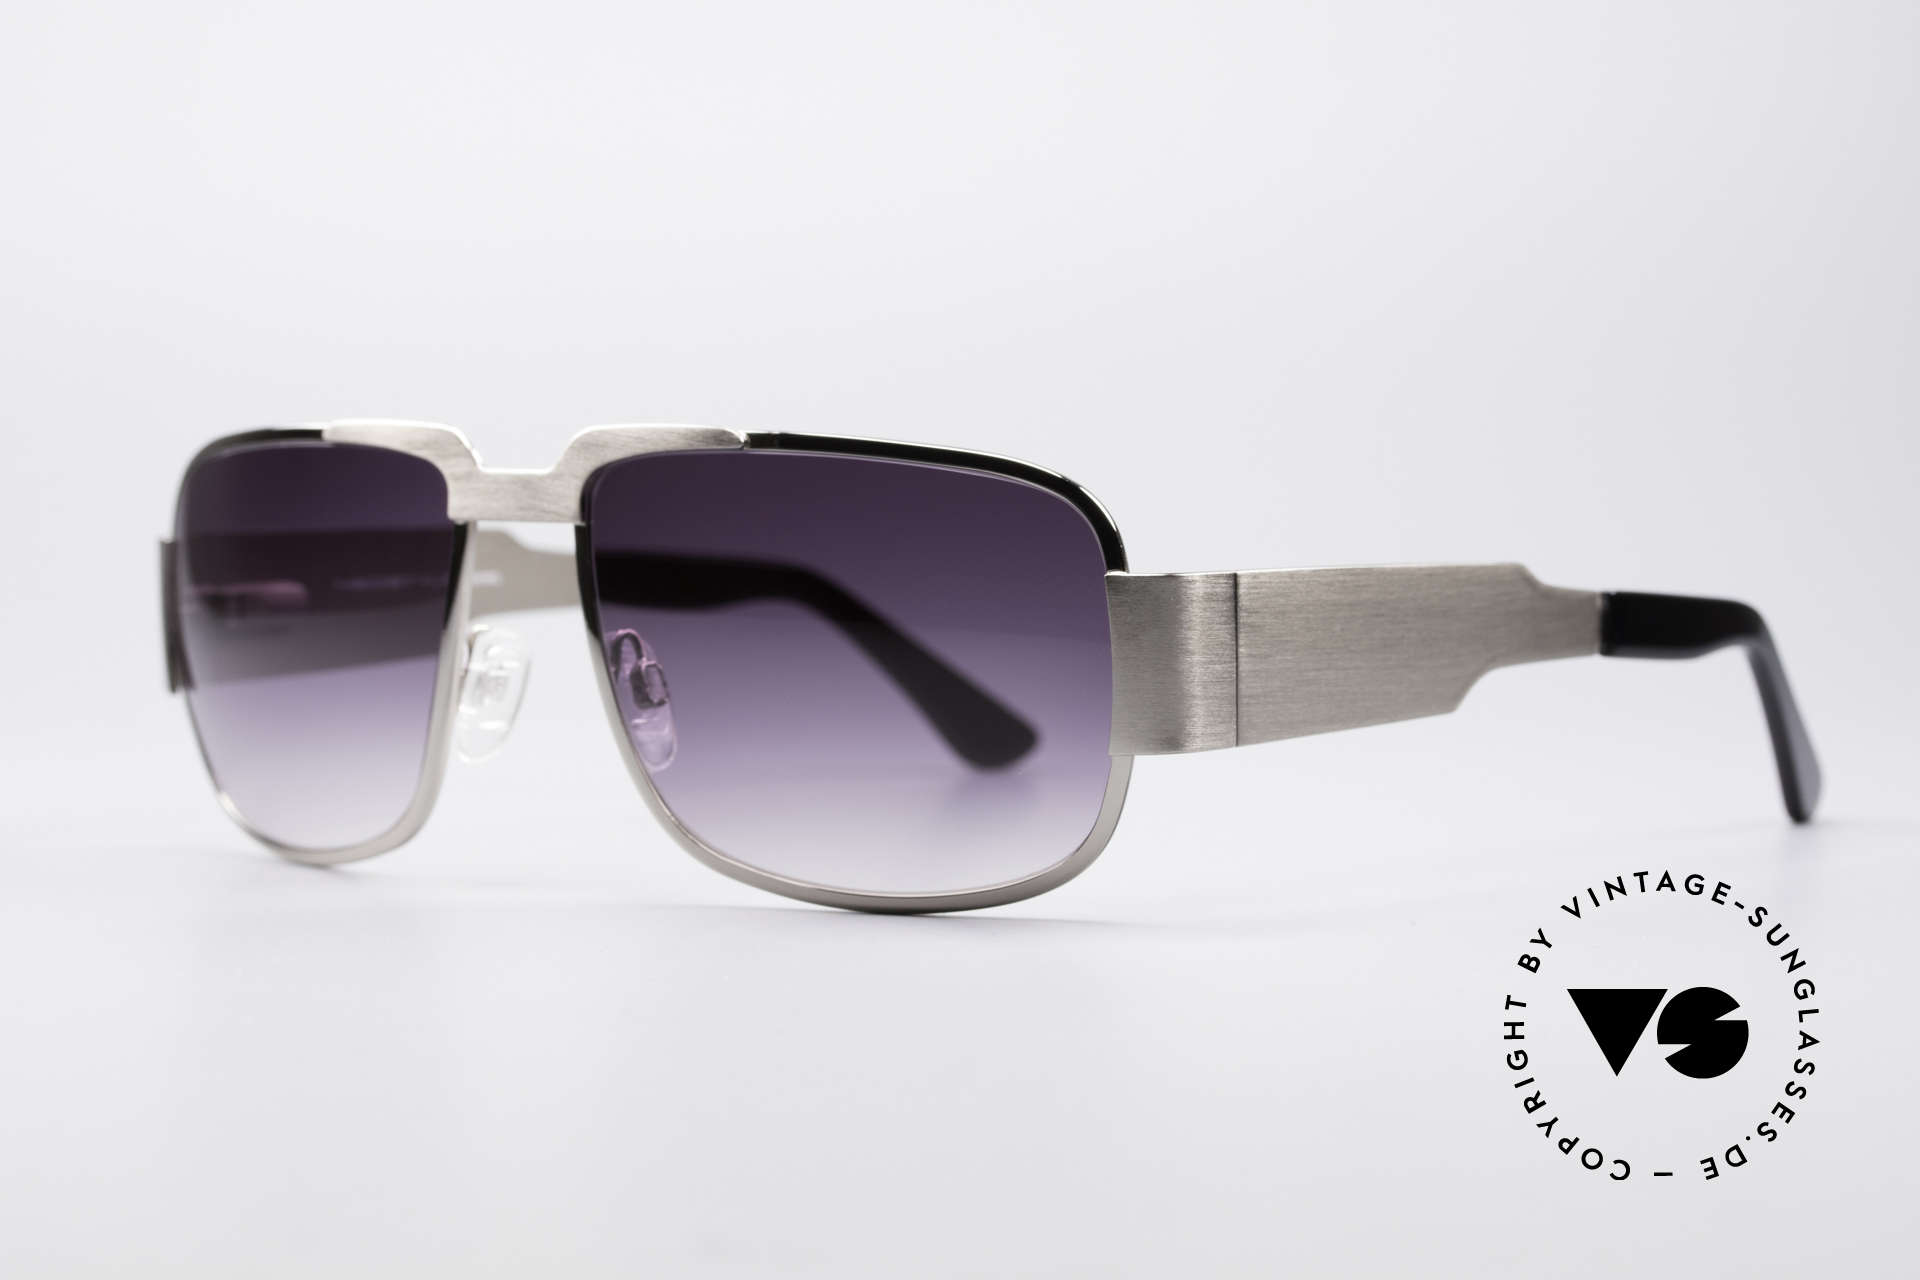 Neostyle Nautic 2 Elvis Presley Sunglasses, massive frame with flexible spring hinges and gray lenses, Made for Men